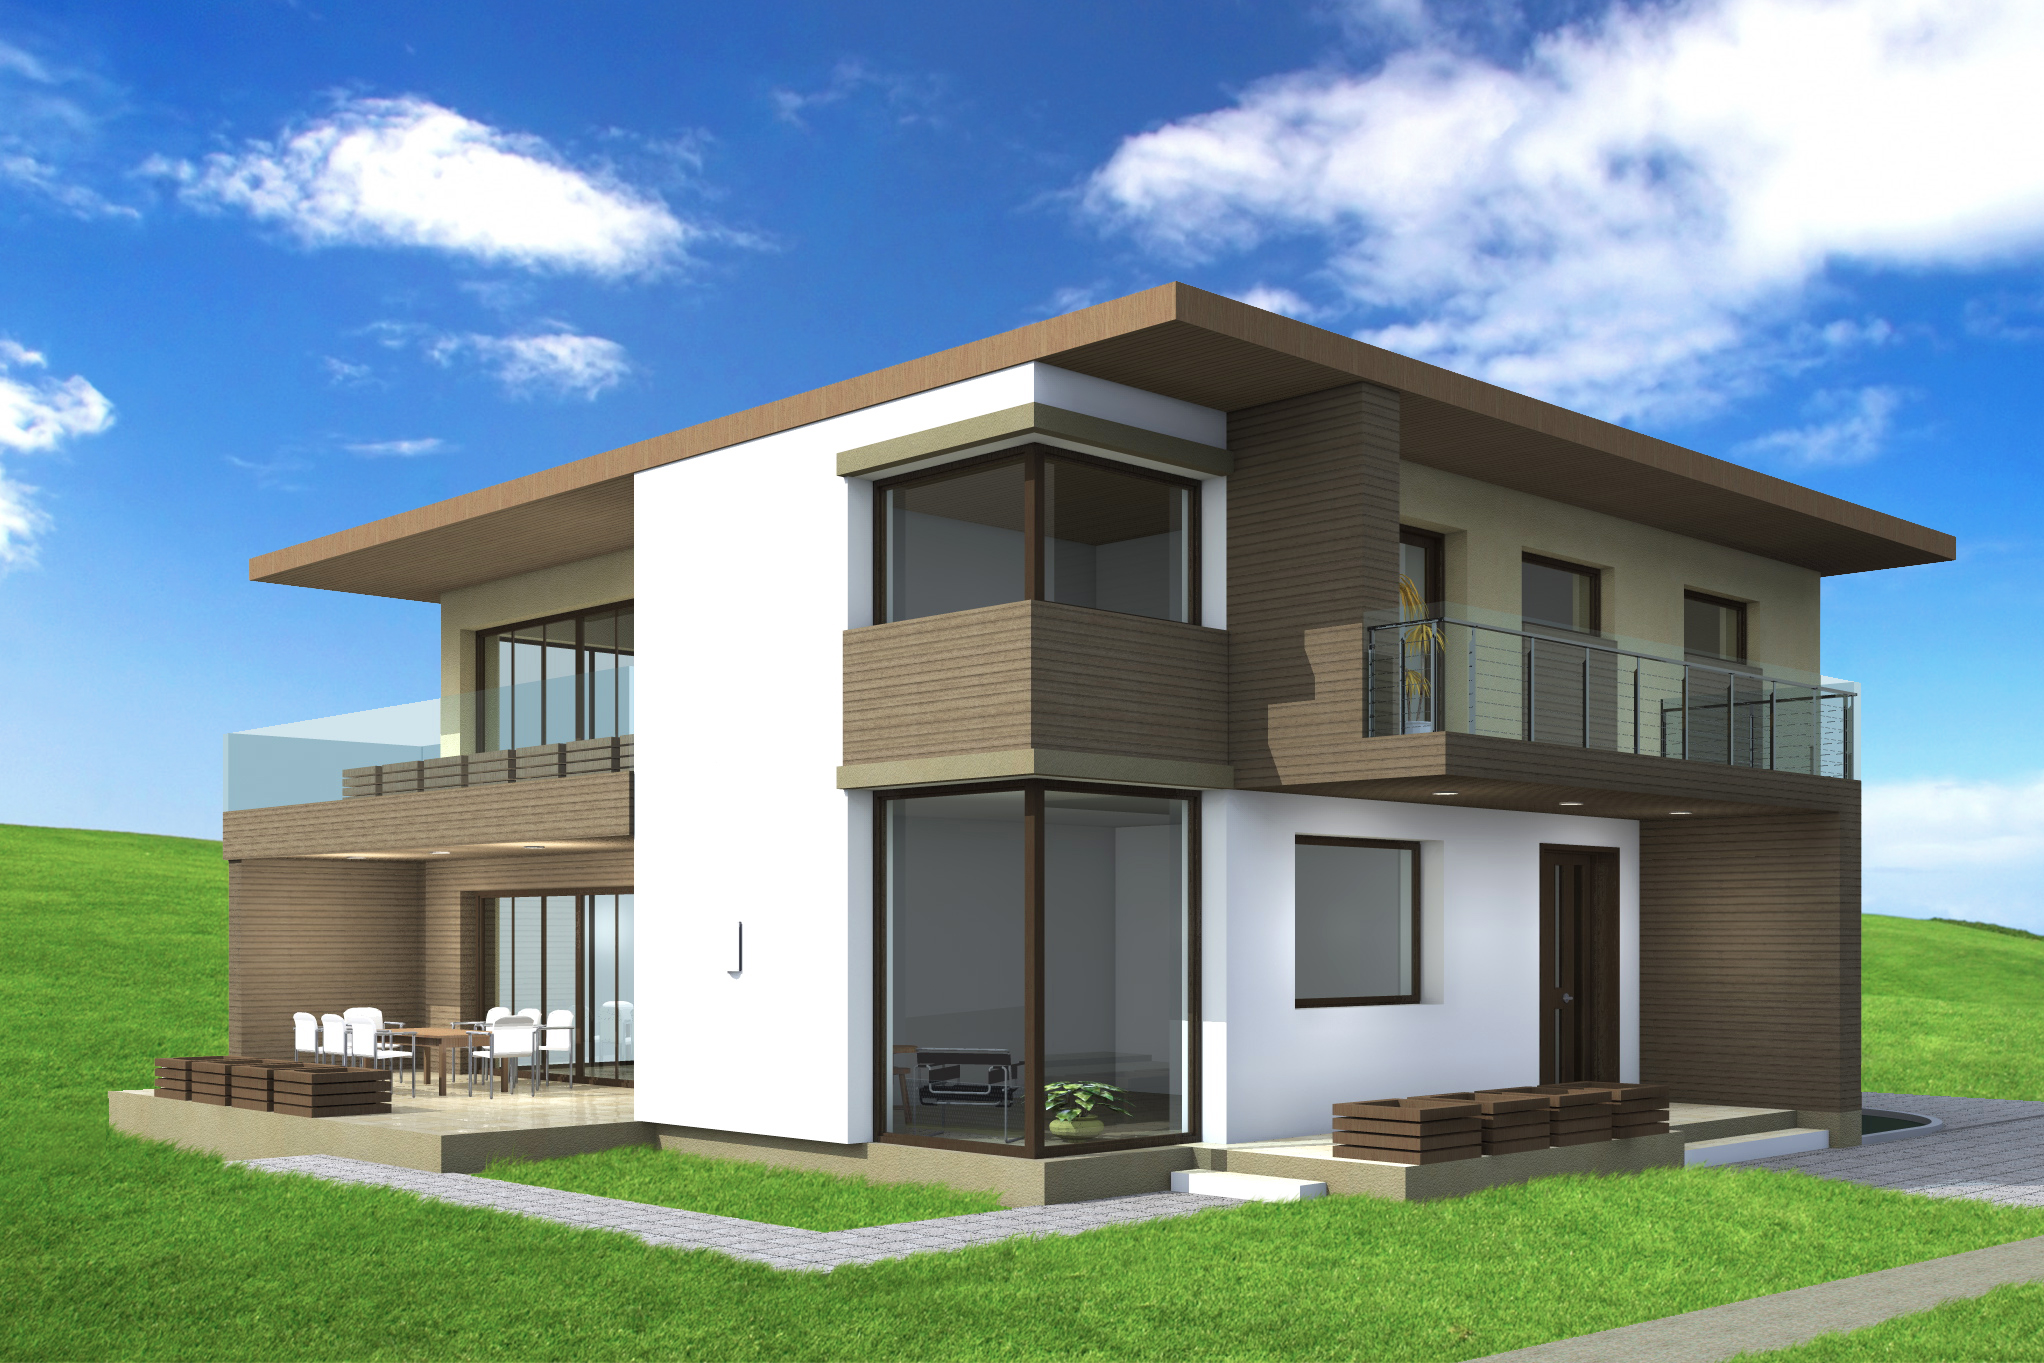 Plan Maison Contemporaine Cj 5 190m2